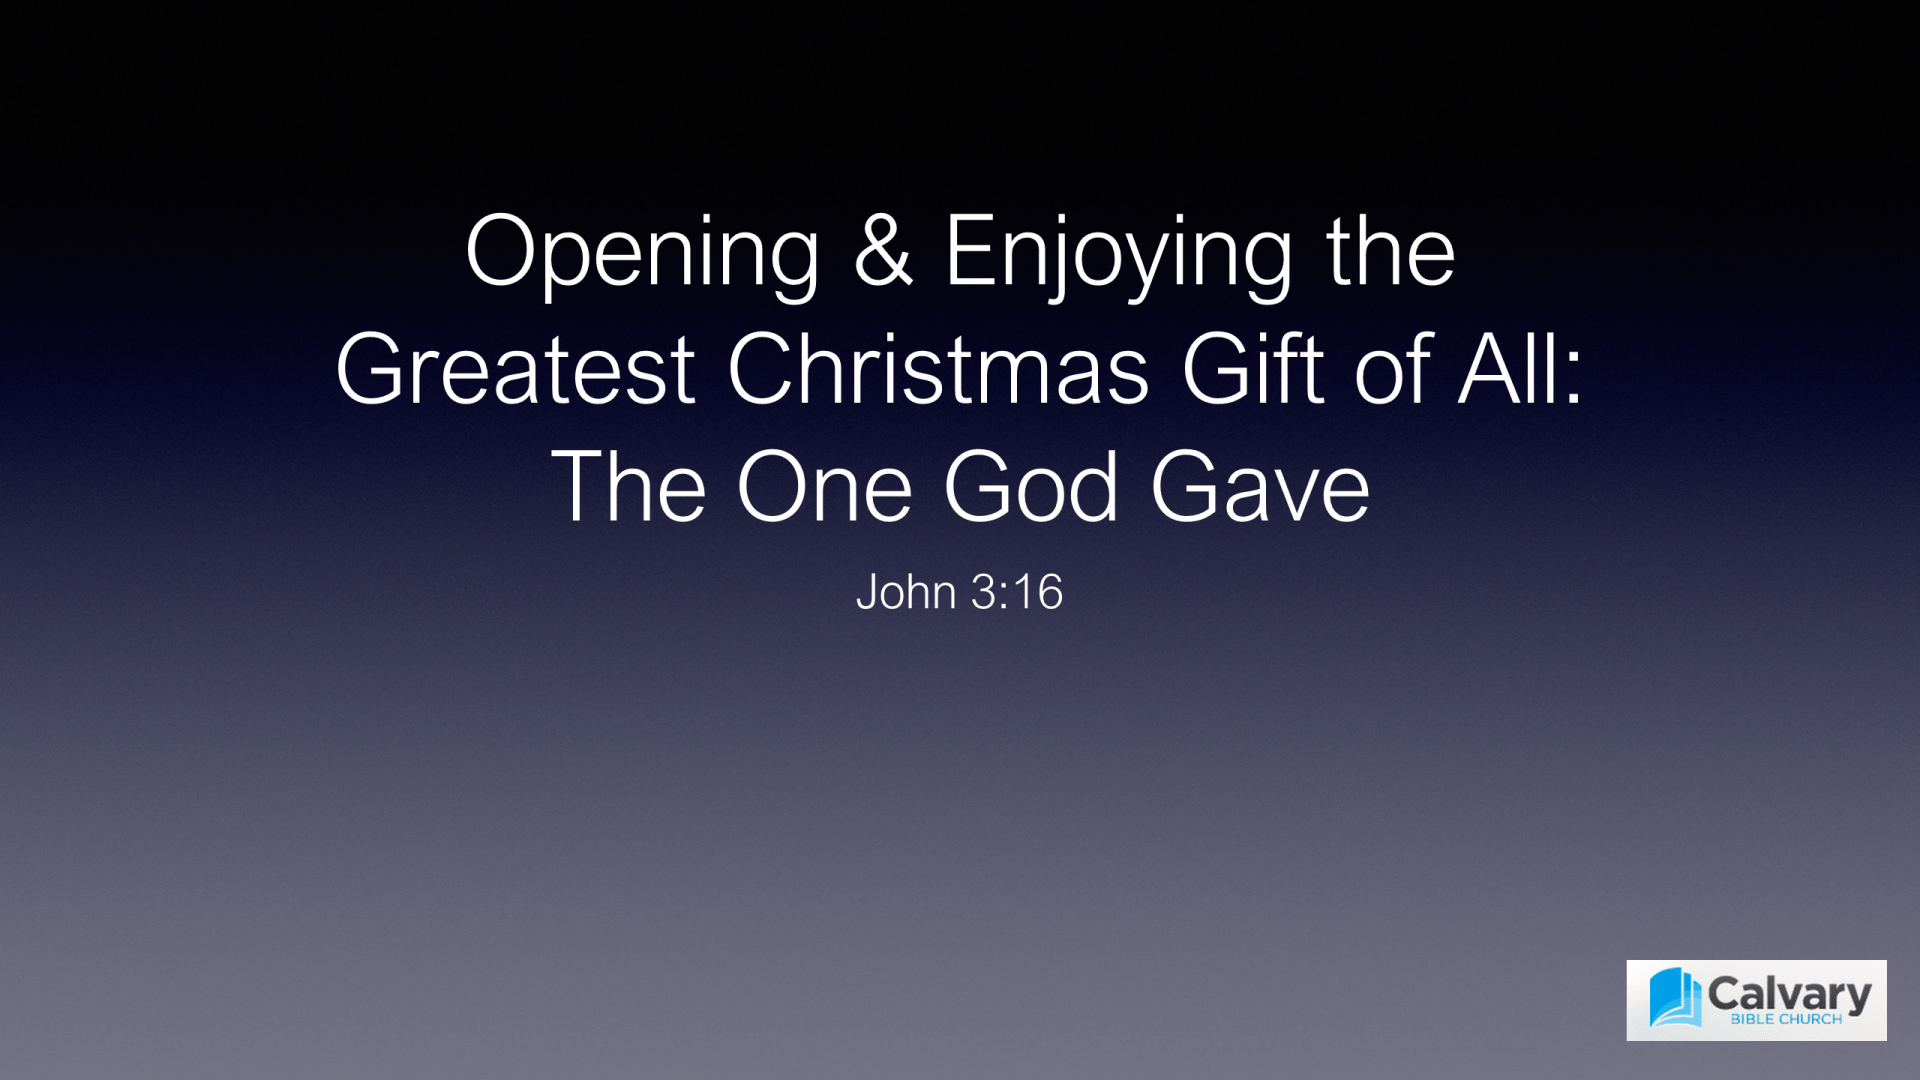 FTF-13 - Opening & Enjoying the Greatest Christmas Gift Of All - The One God Gave (1)